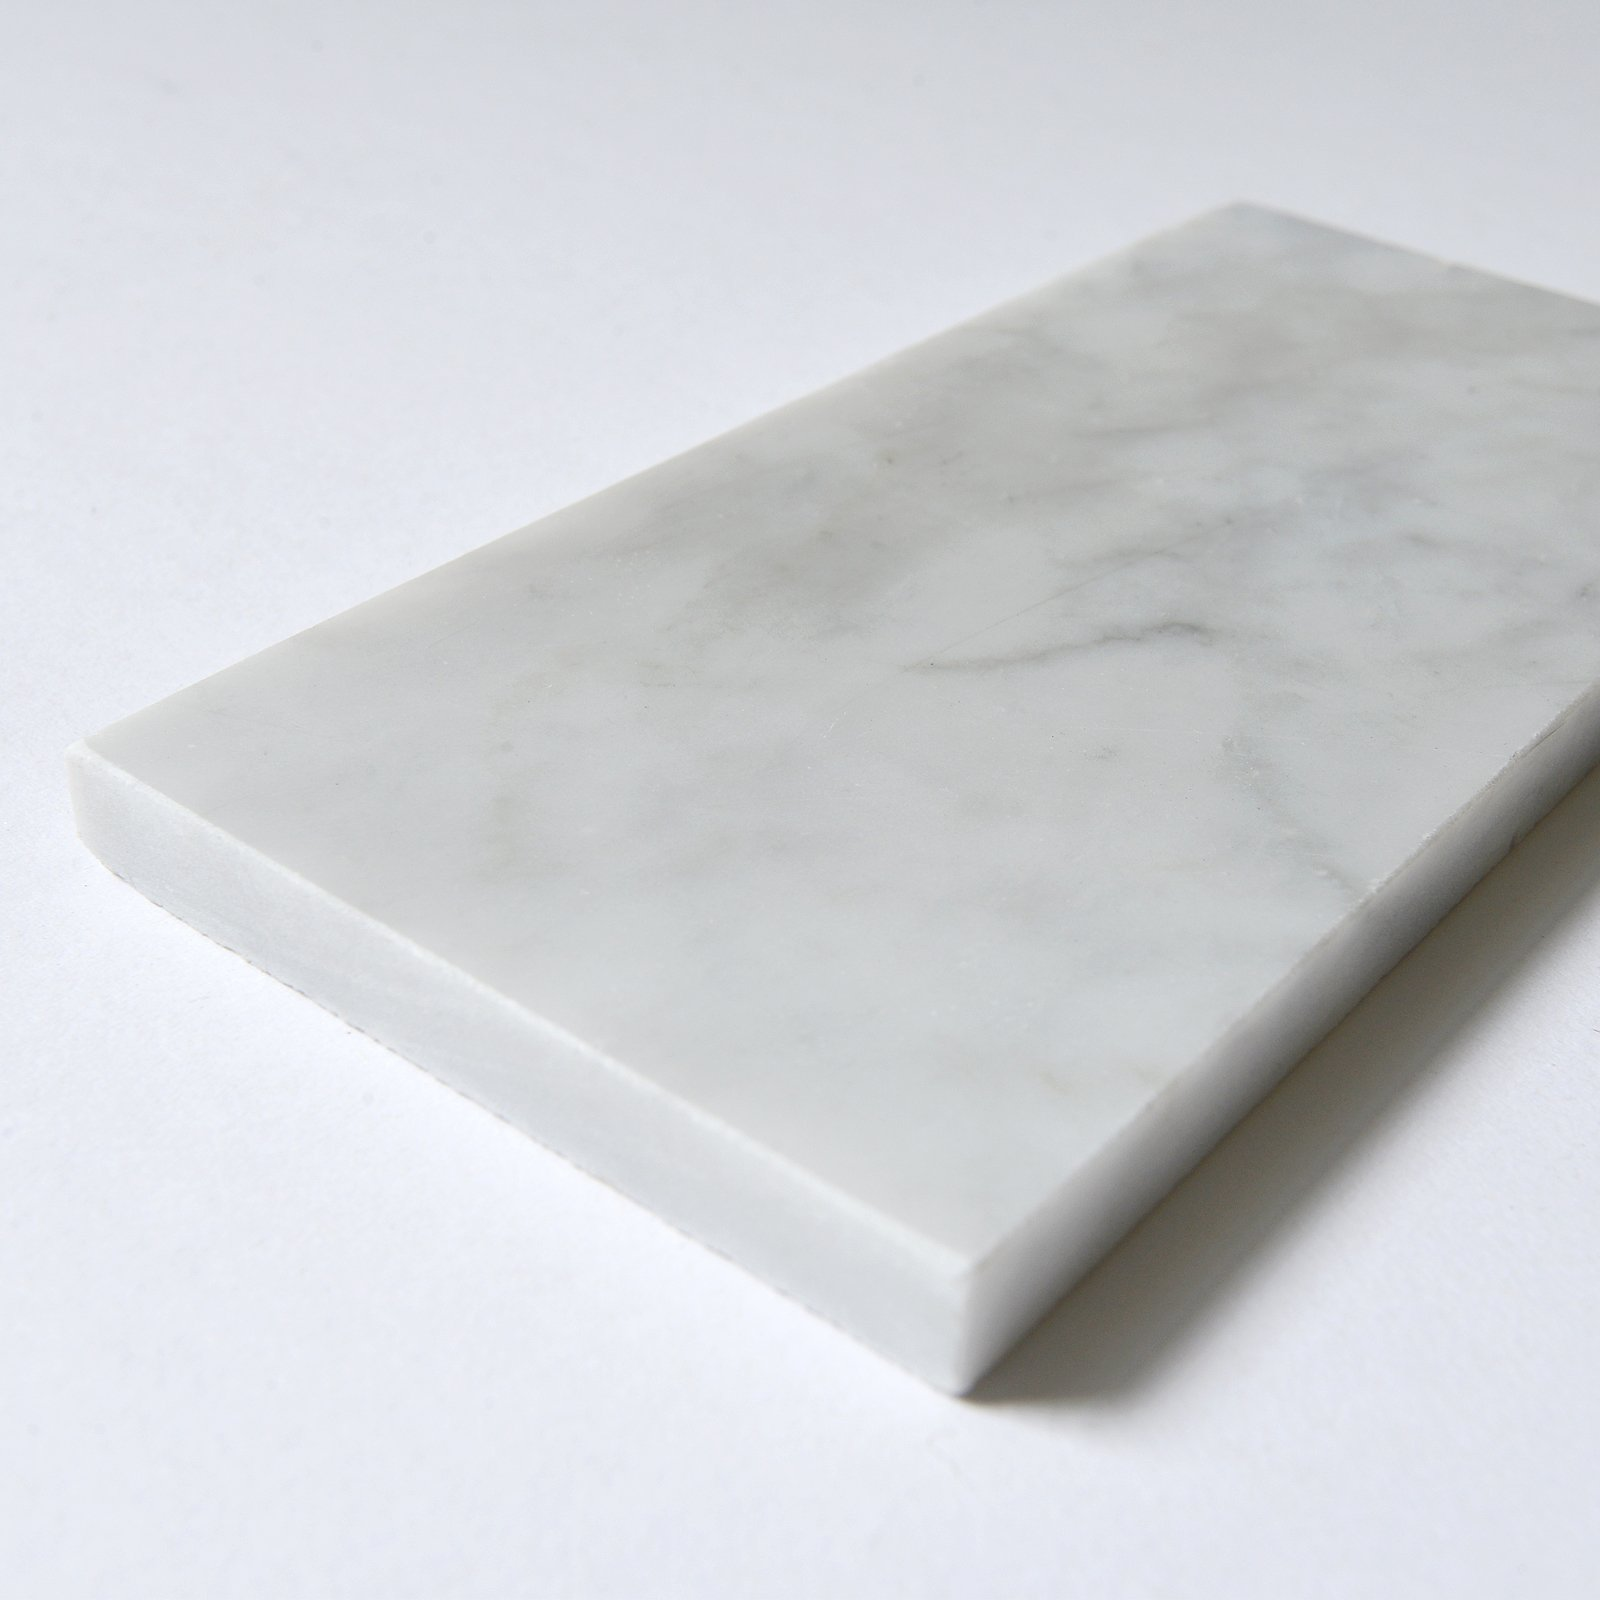 Carrara White Marble Field Tile, CWMT0306, 3''X6'' Subway Tile, Polished (Box of 40 Pieces) by CWM